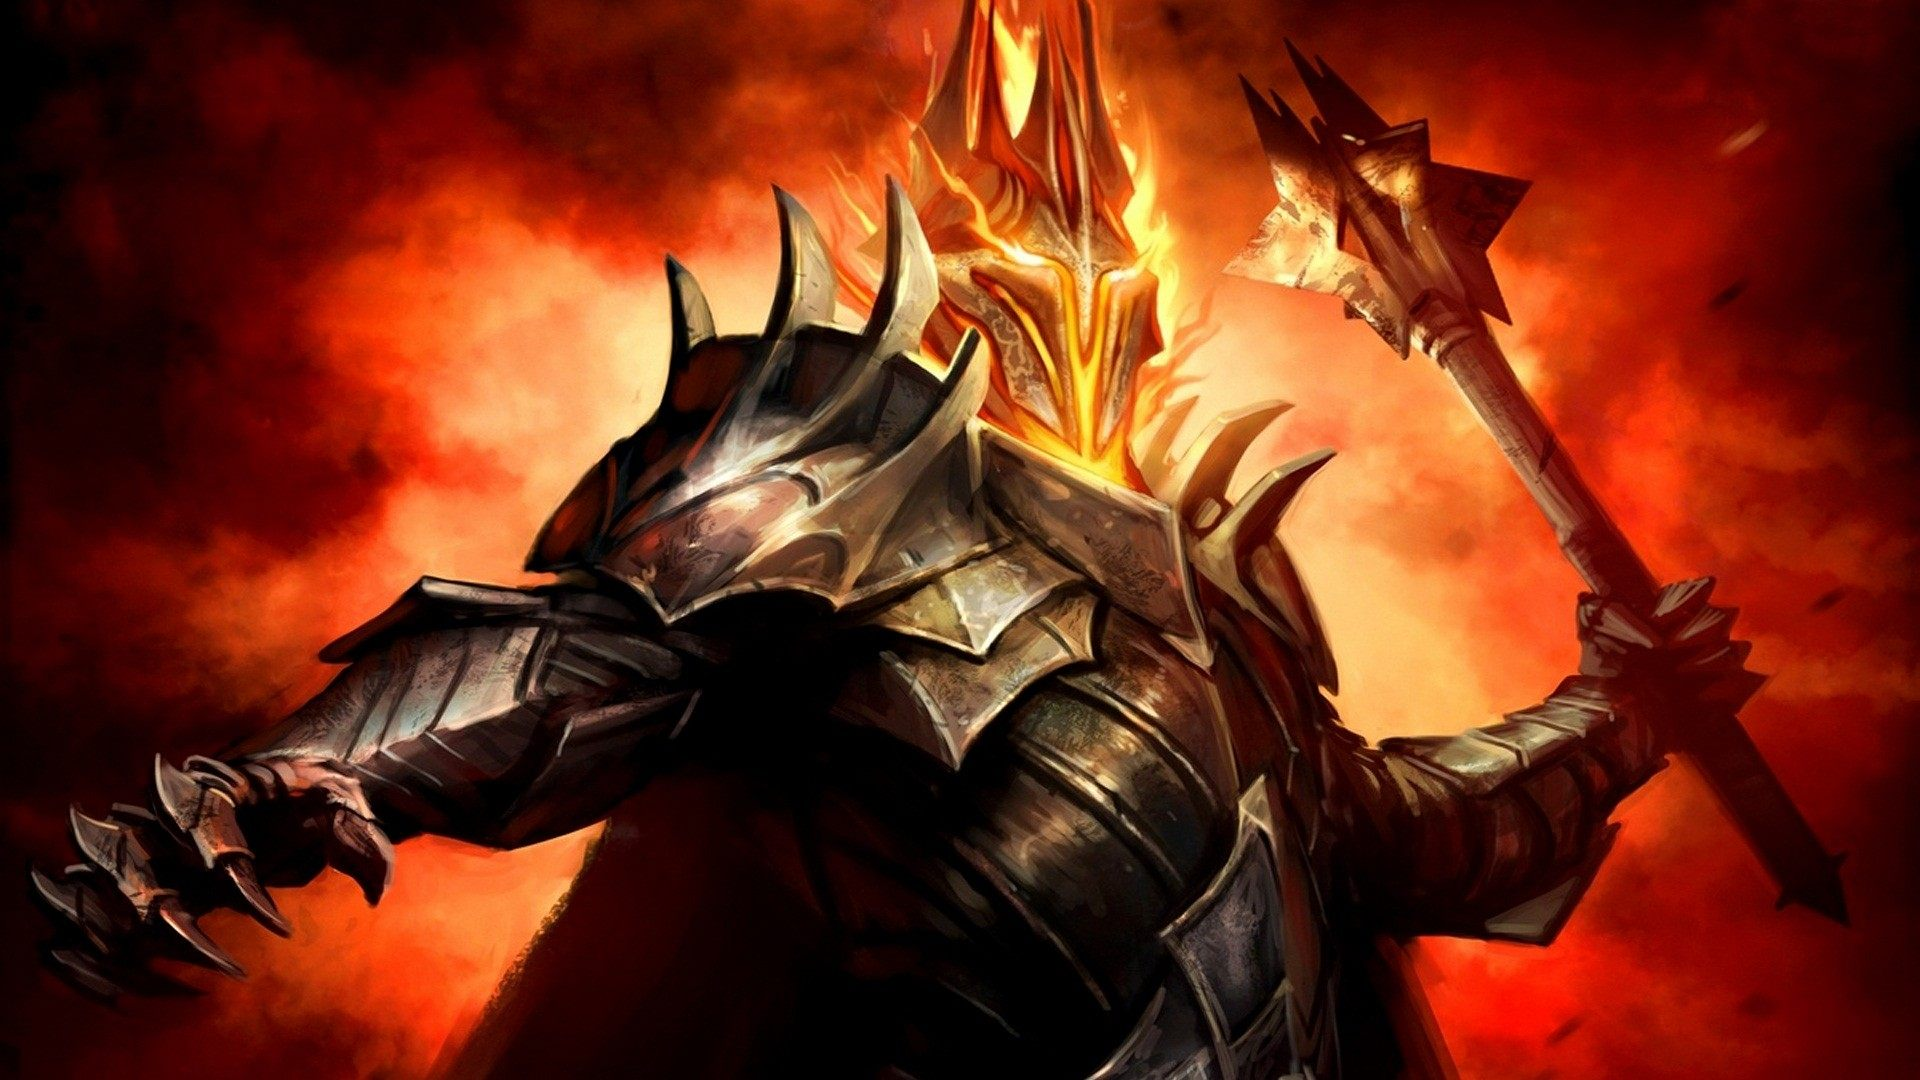 sauron-the-lord-of-the-rings